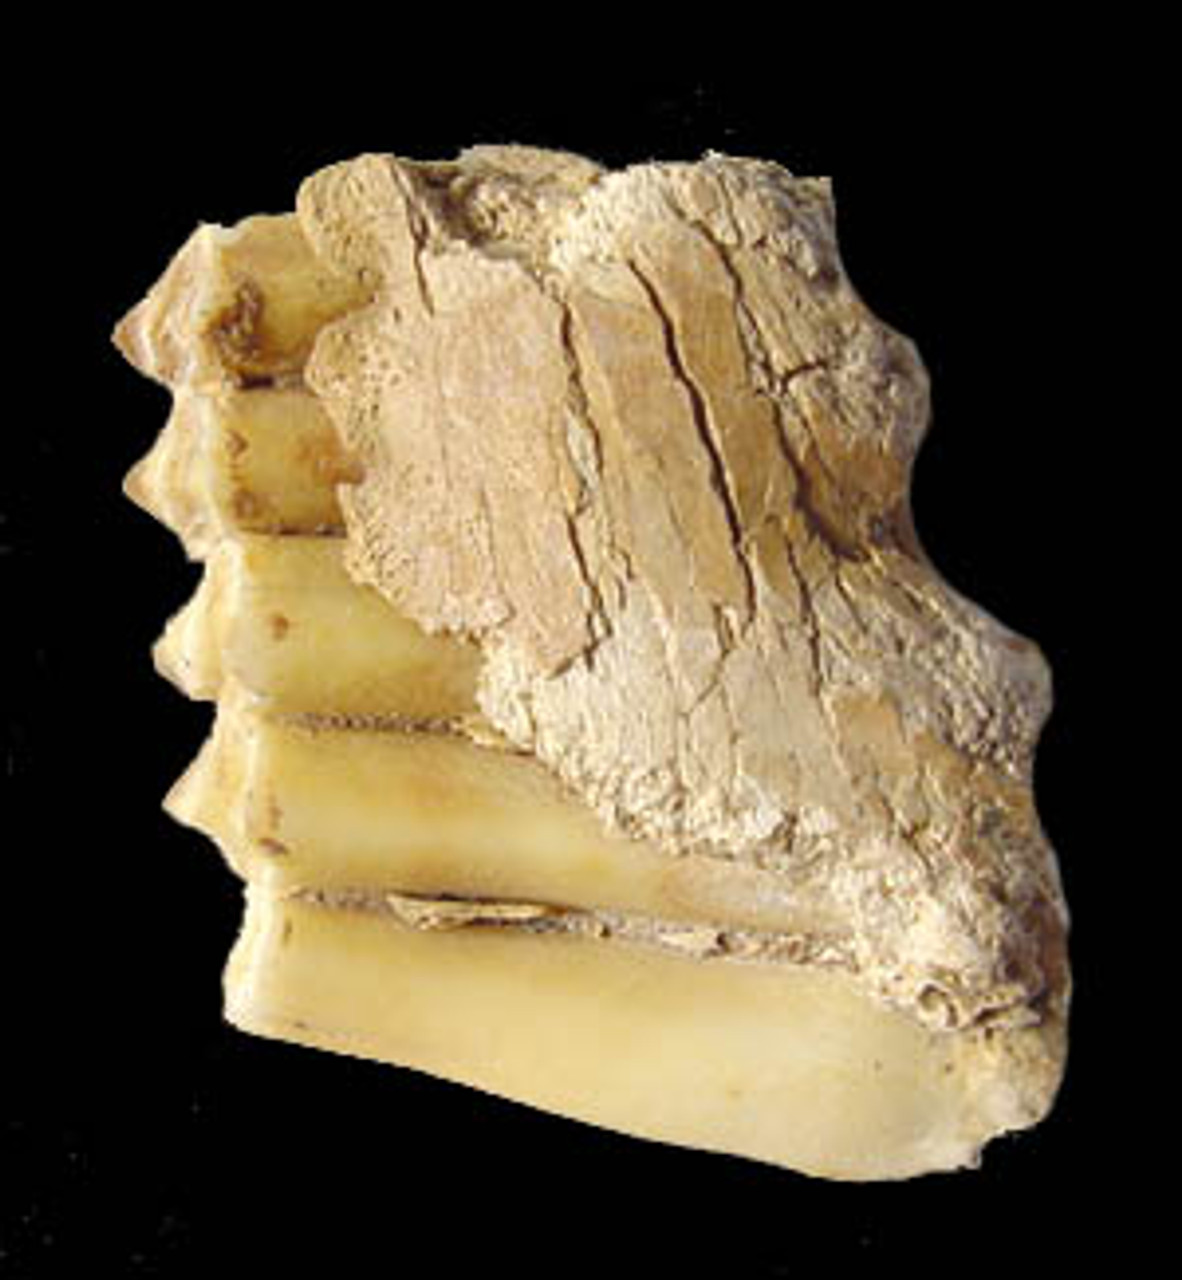 LM42-009 - RARE ICE AGE CAPRA IBEX FOSSIL PARTIAL JAW WITH PRIMARY MOLAR TOOTH